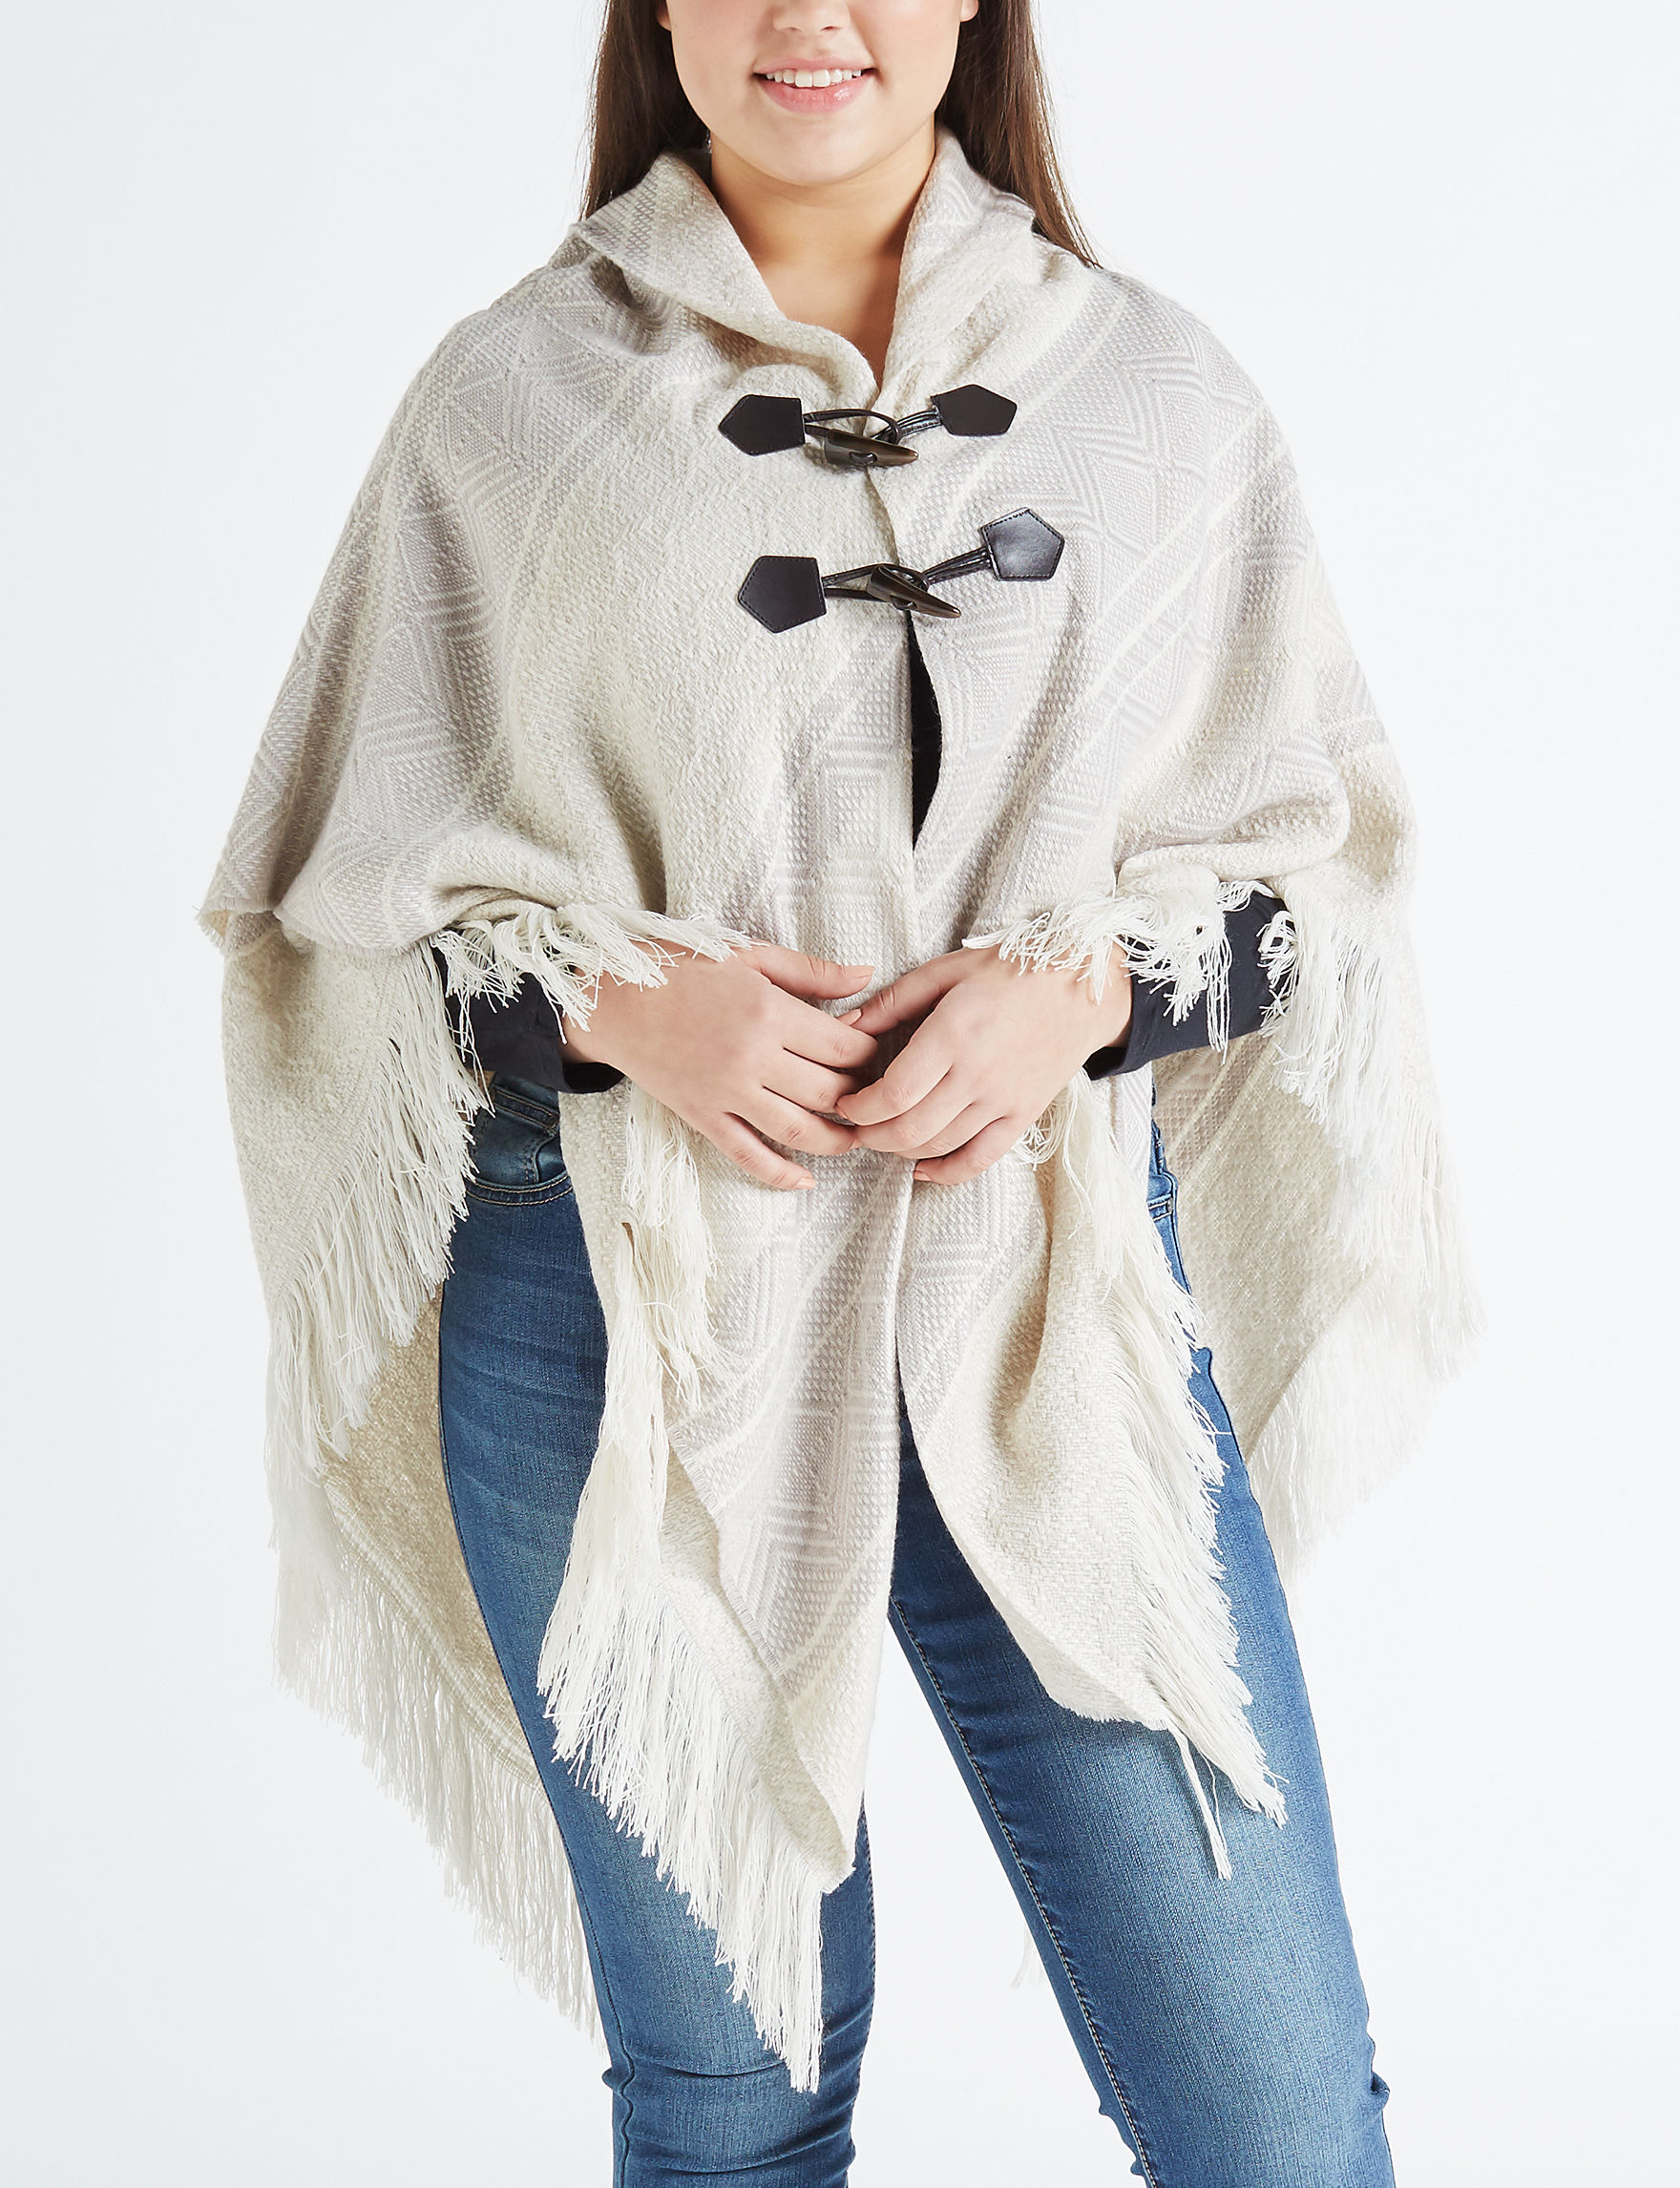 Lake Shore Drive Beige / Multi Scarves & Wraps